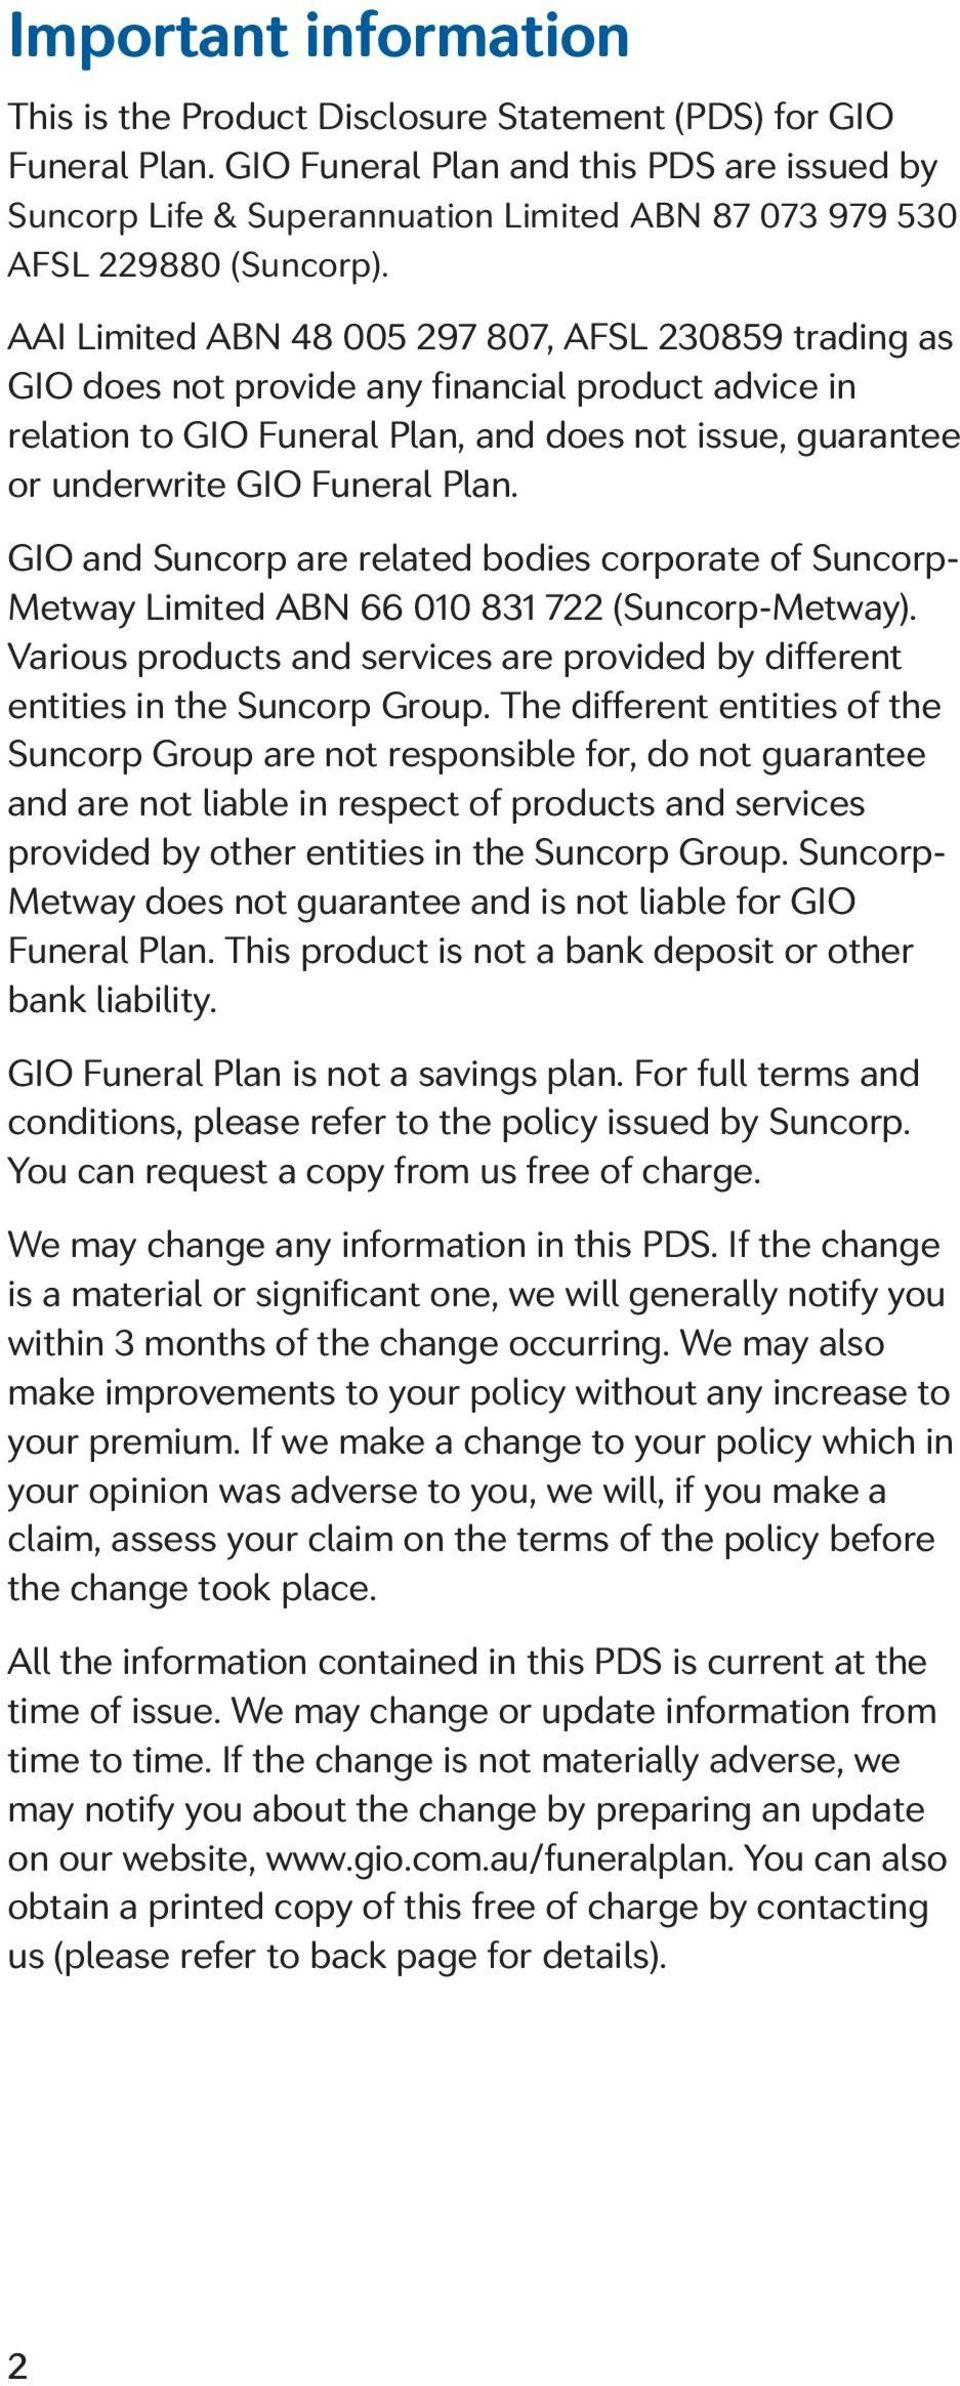 AAI Limited ABN 48 005 297 807, AFSL 230859 trading as GIO does not provide any financial product advice in relation to GIO Funeral Plan, and does not issue, guarantee or underwrite GIO Funeral Plan.